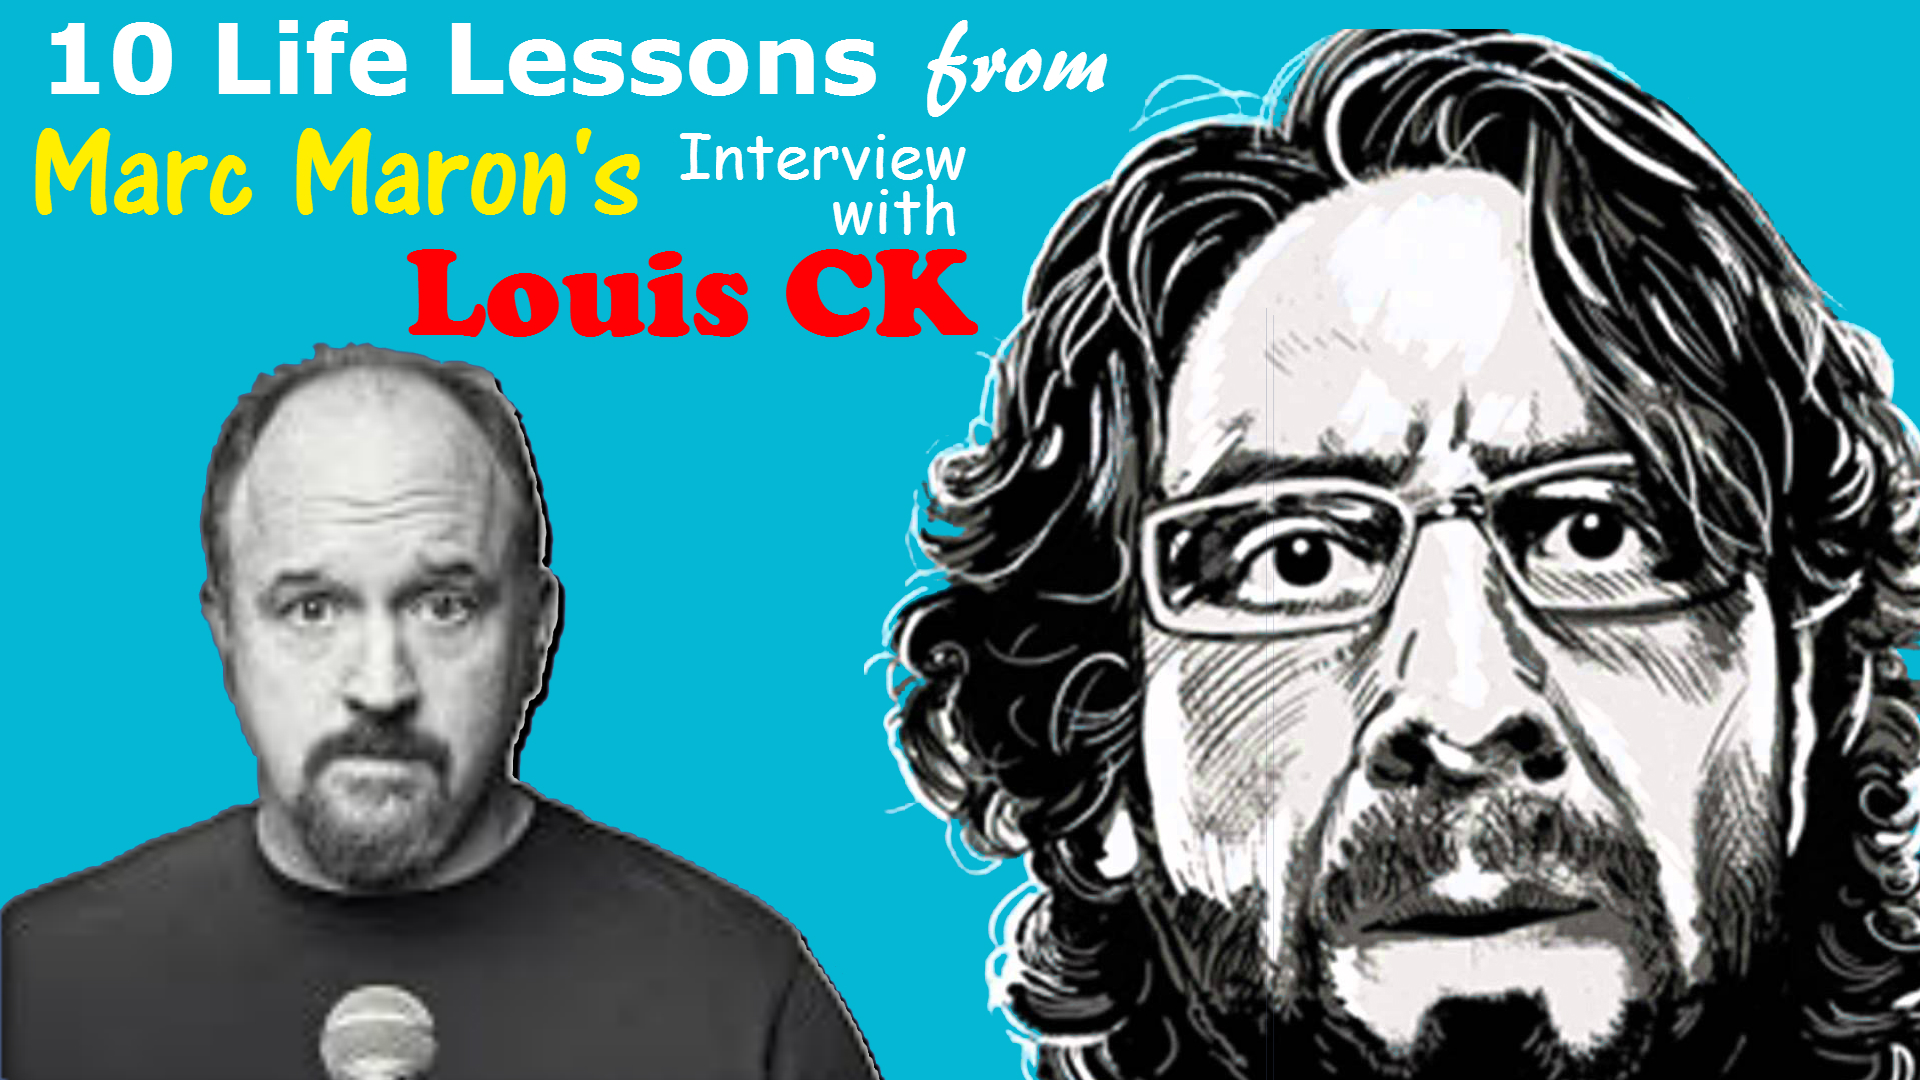 10 Life Lessons from Marc Maron's interview with Louis C.K.